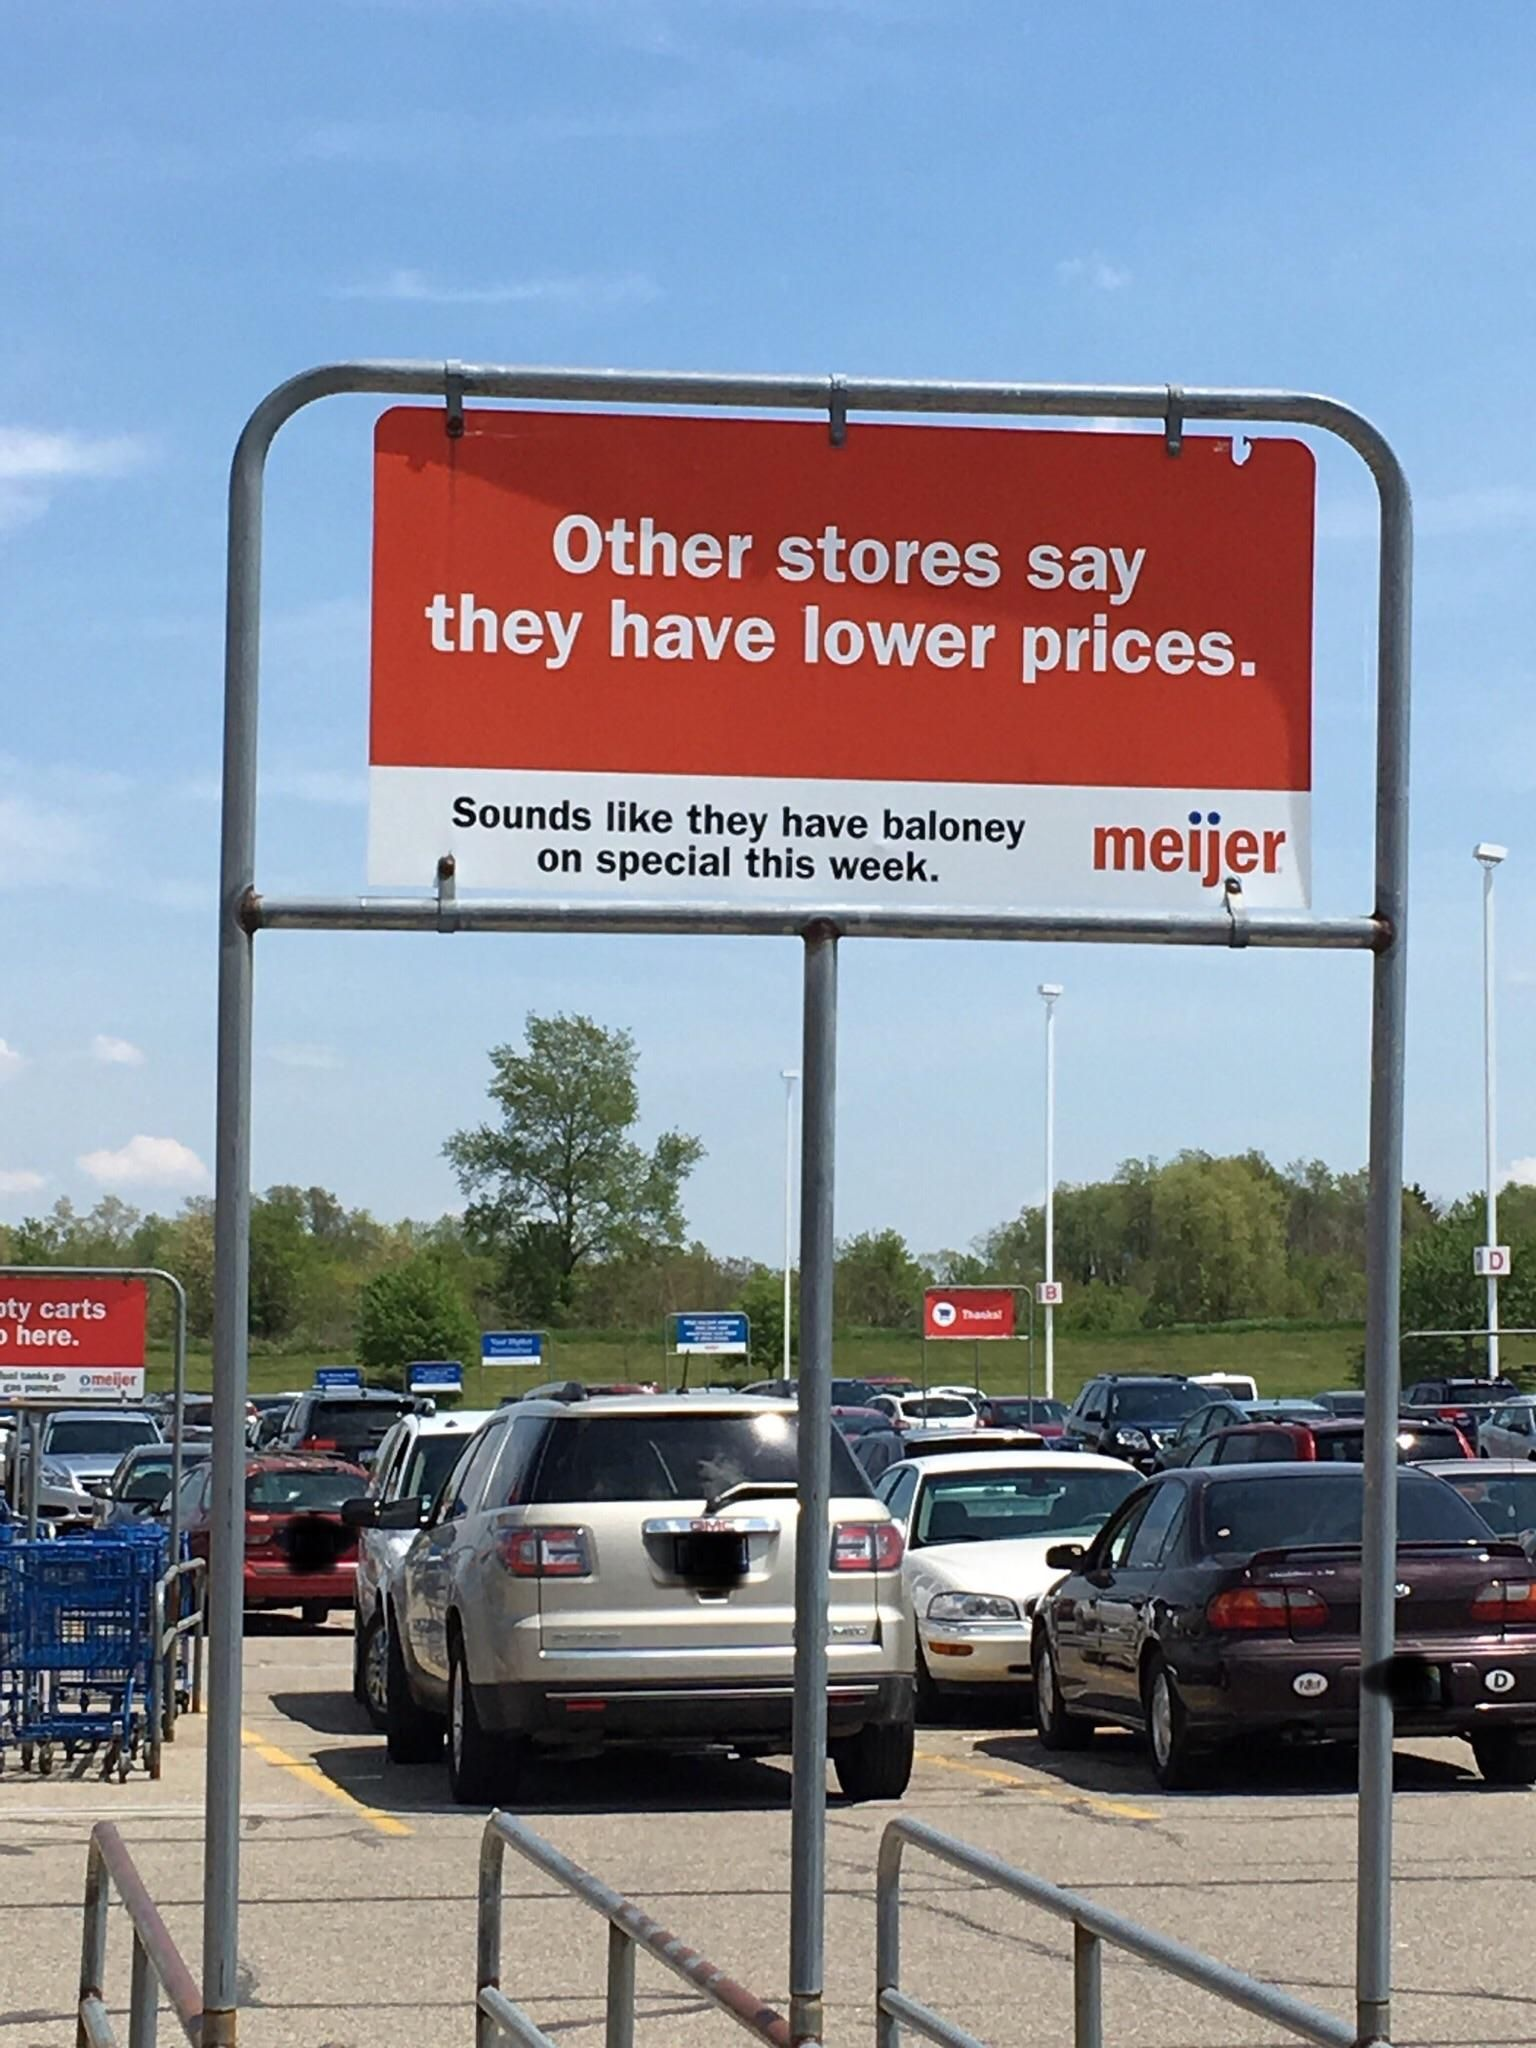 Some unexpected shade thrown by Meijer.